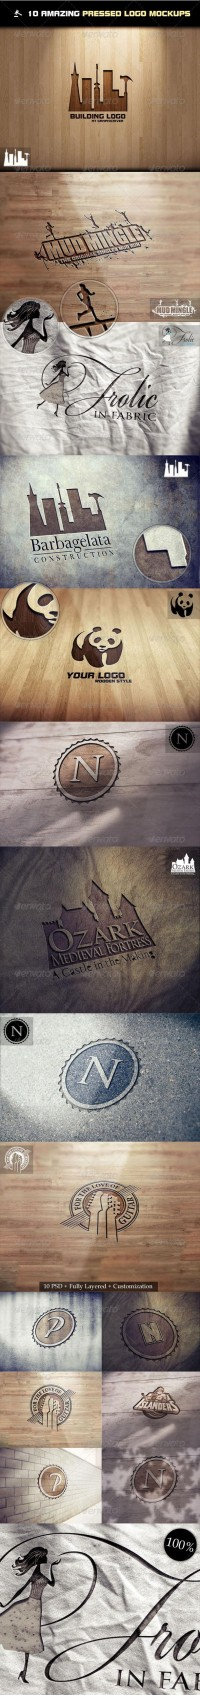 Graphics - 10 Amazing Pressed Logo Mock-Ups | GraphicRiver